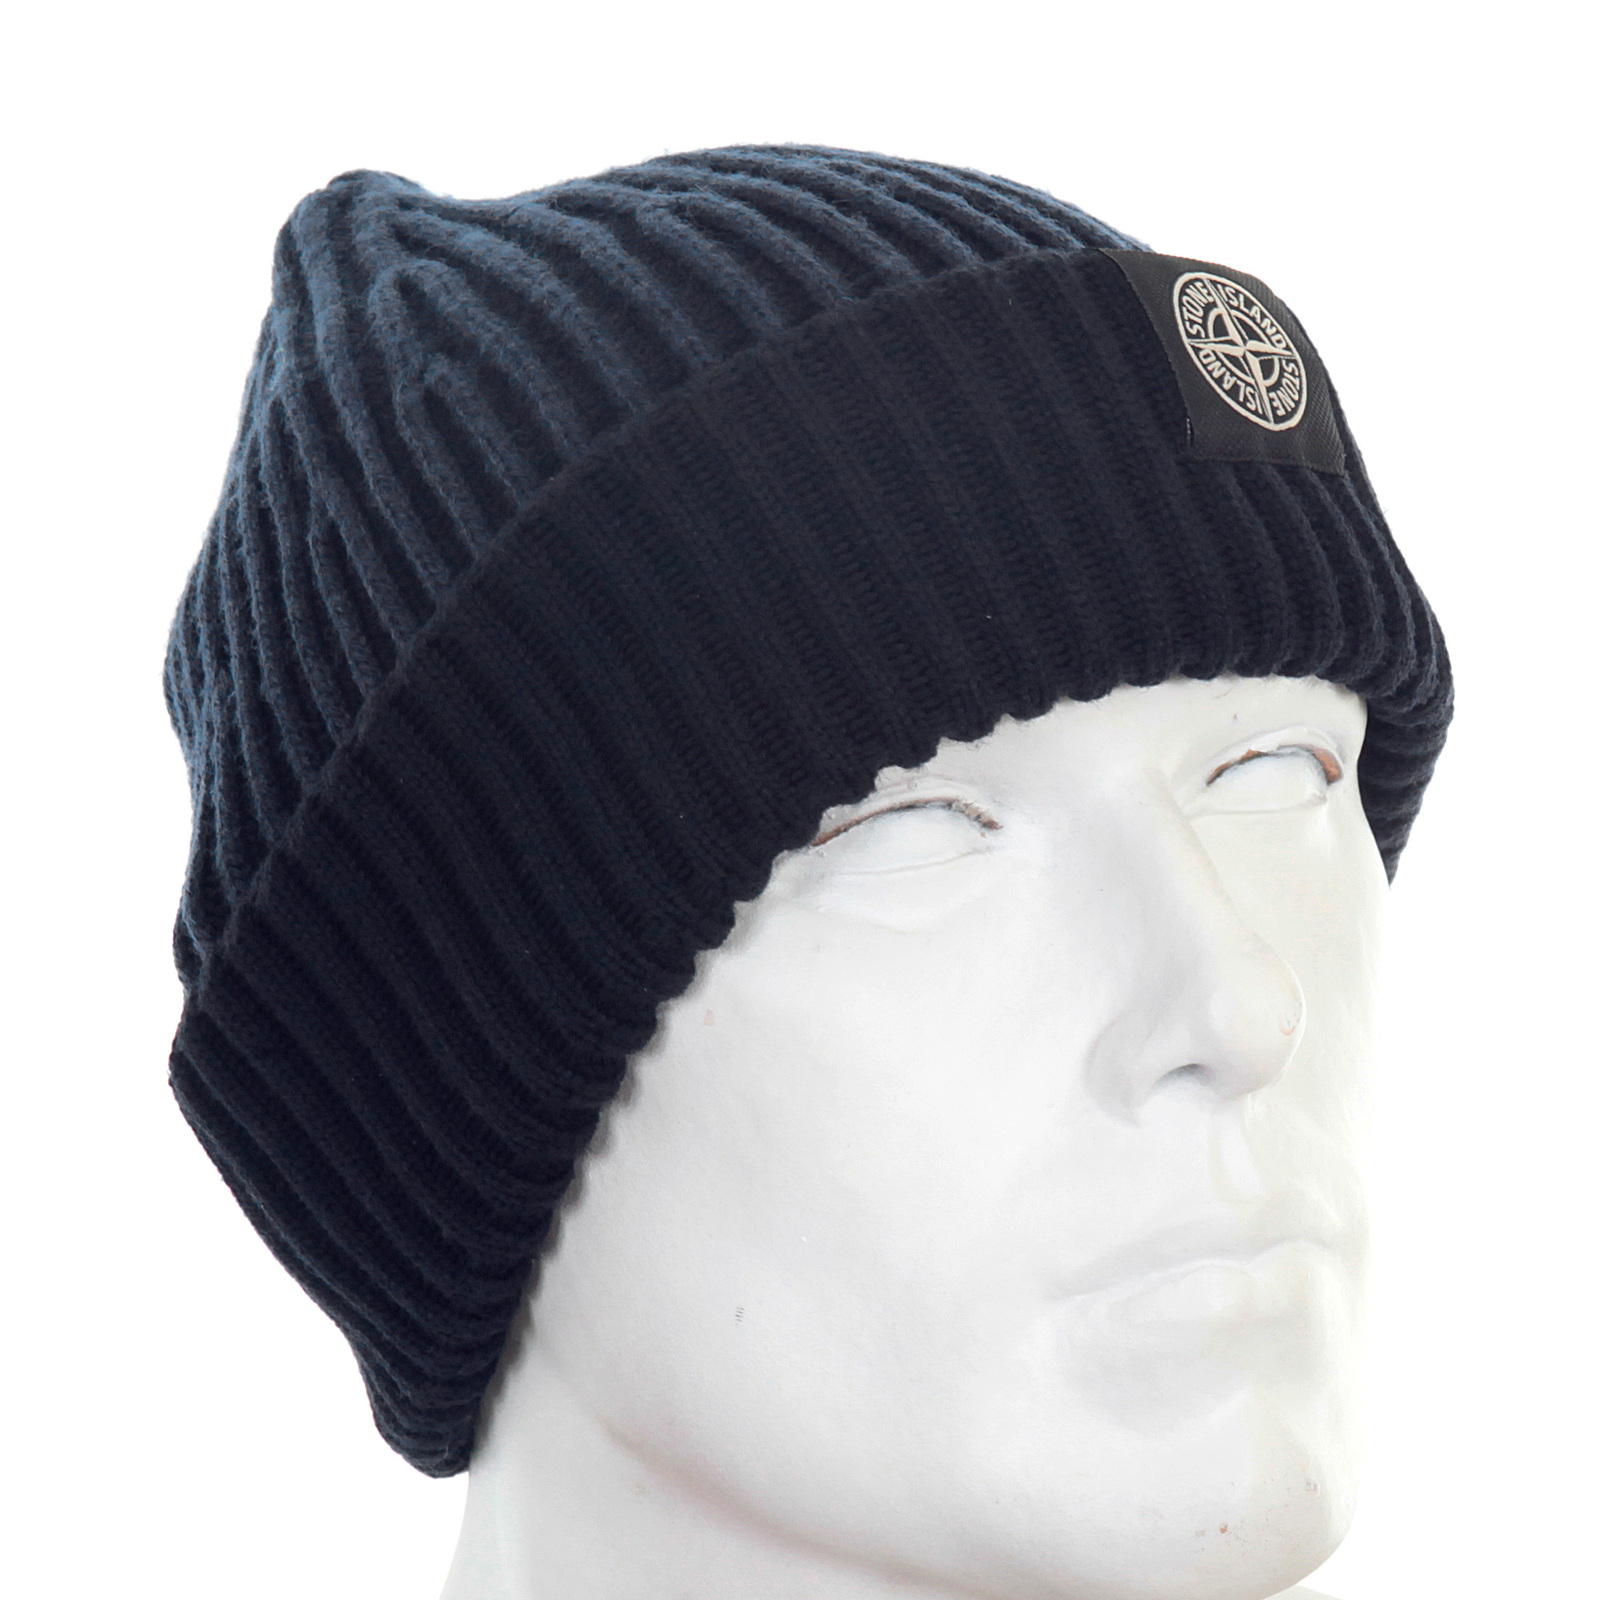 ca85a1fc95c where can i buy stone island mens navy rib knit 6115n09c6 beanie hat si3016  3b379 eef72